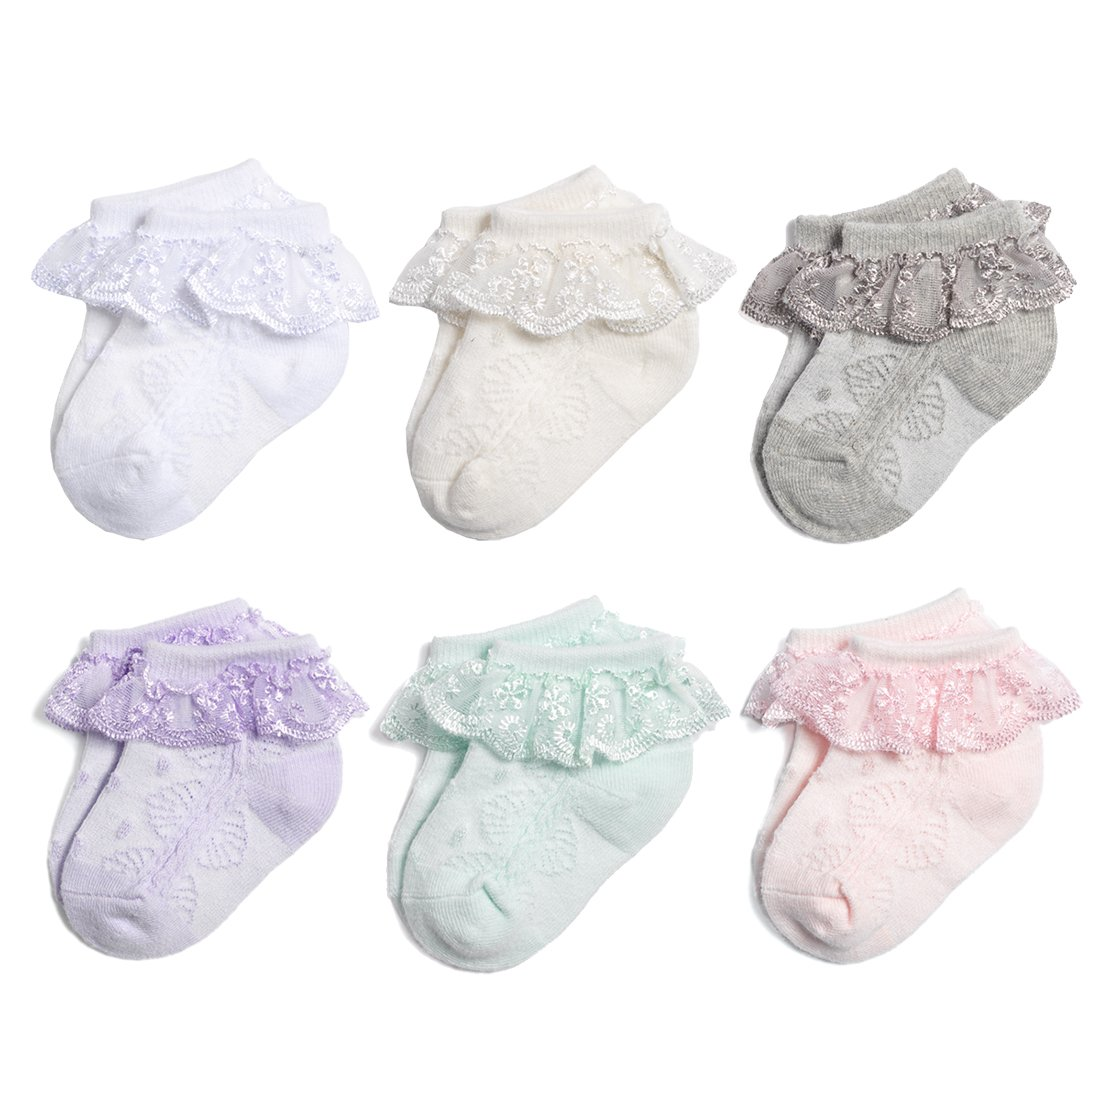 NovForth Baby-Girls Eyelet Frilly Lace Socks(Pack of 6)